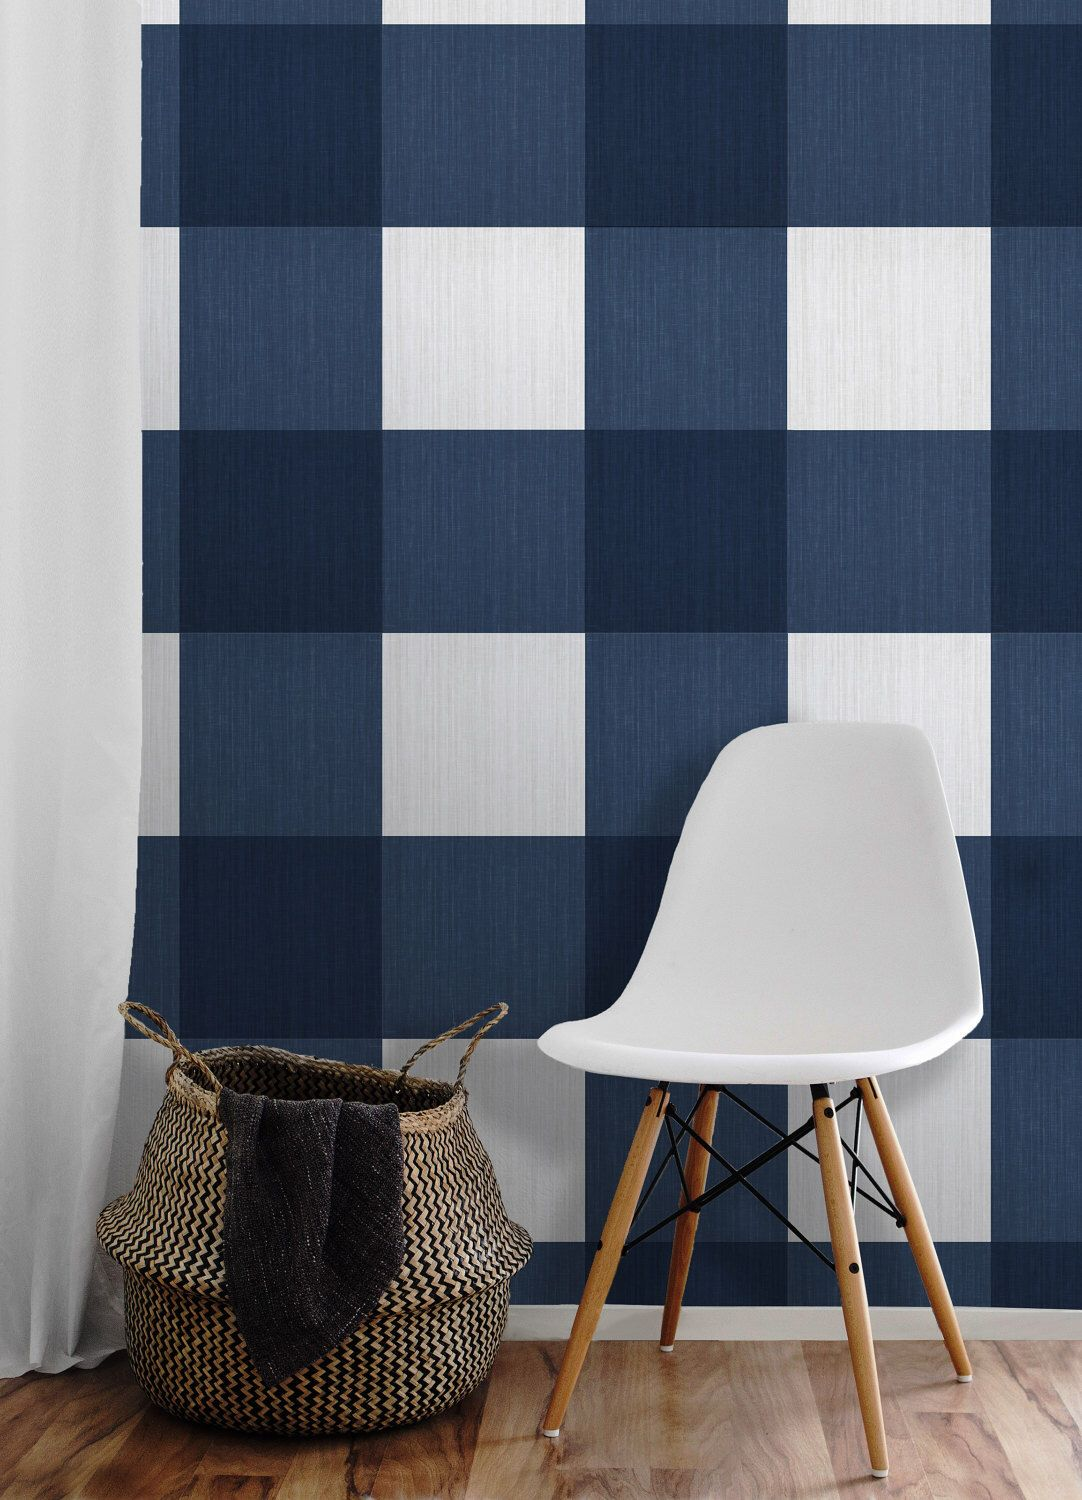 Large Buffalo Check Navy Removable Peel N Stick Wallpaper By Wallpaperie On Etsy Https Www Etsy Com Buffalo Check Peel N Stick Wallpaper Plaid Wallpaper